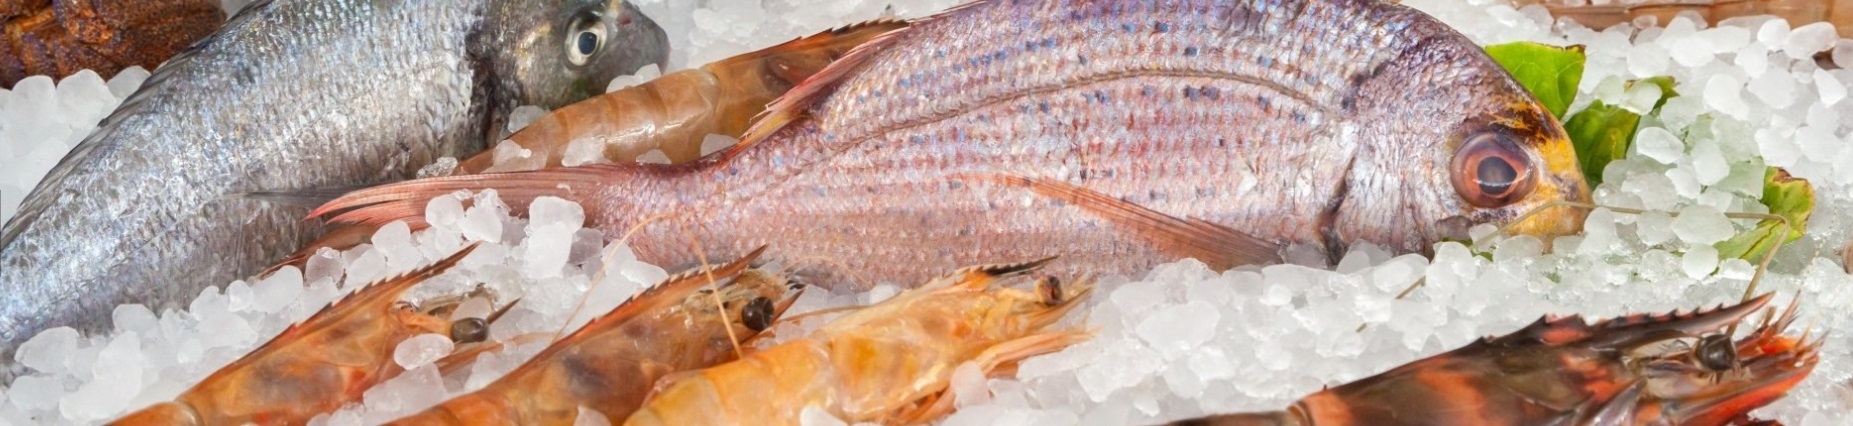 Independent Fresh Seafood and Hot Food Retail Shop – Brisbane Northside QLD